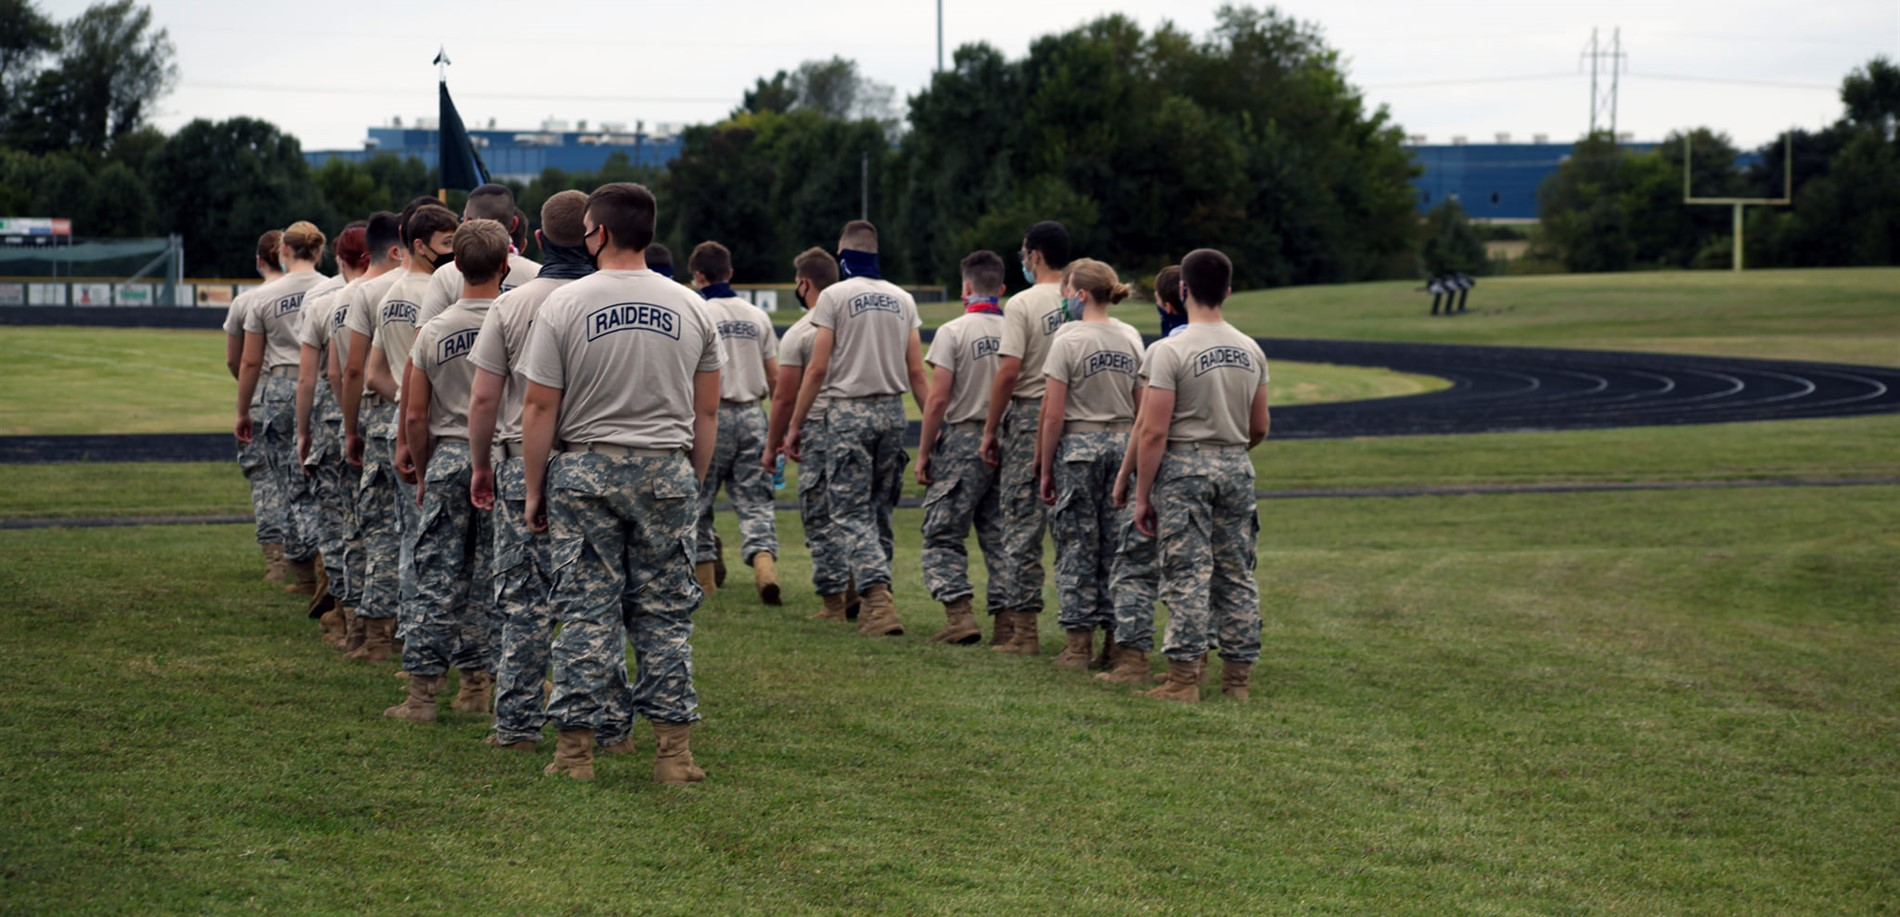 Central Hardin High School JROTC cadets prepare for their next event at the Hardin County Raider Cup competition.